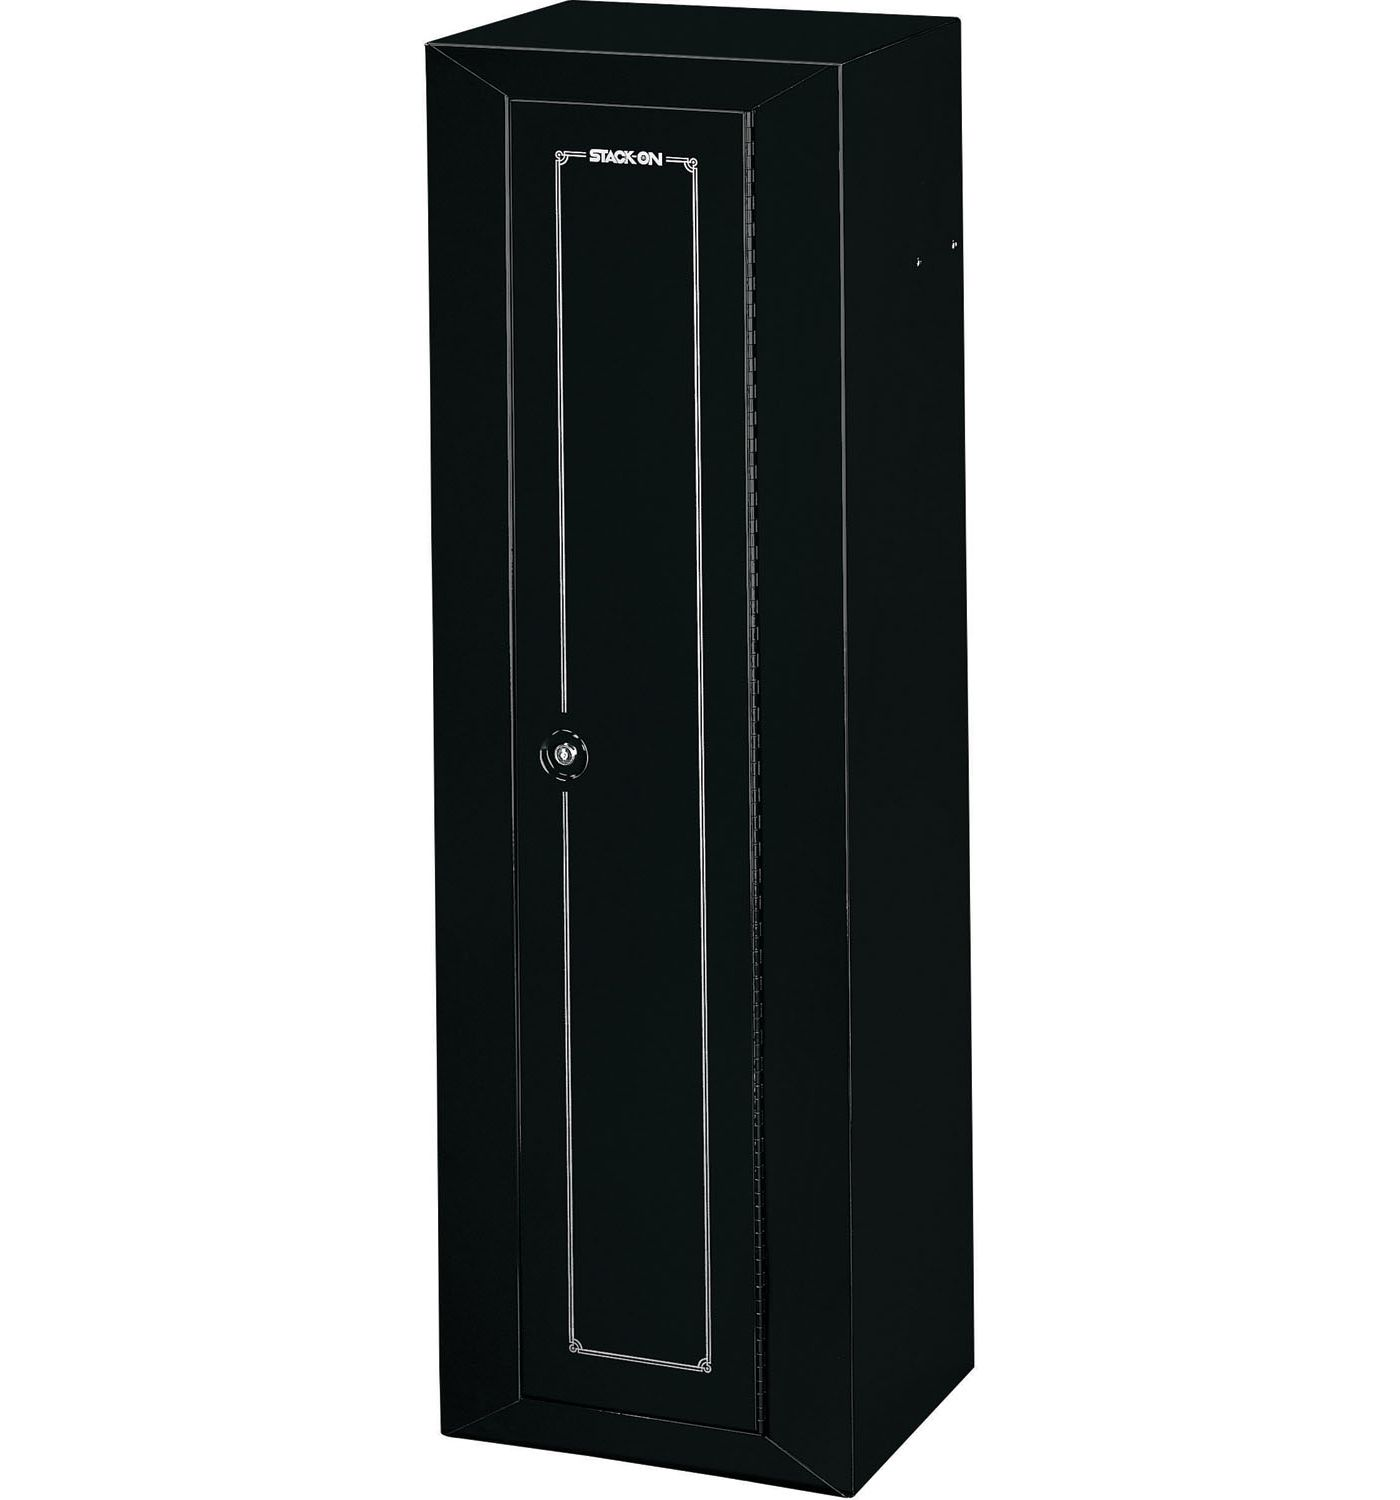 Stack-On 10 Gun Compact Steel Security Cabinet